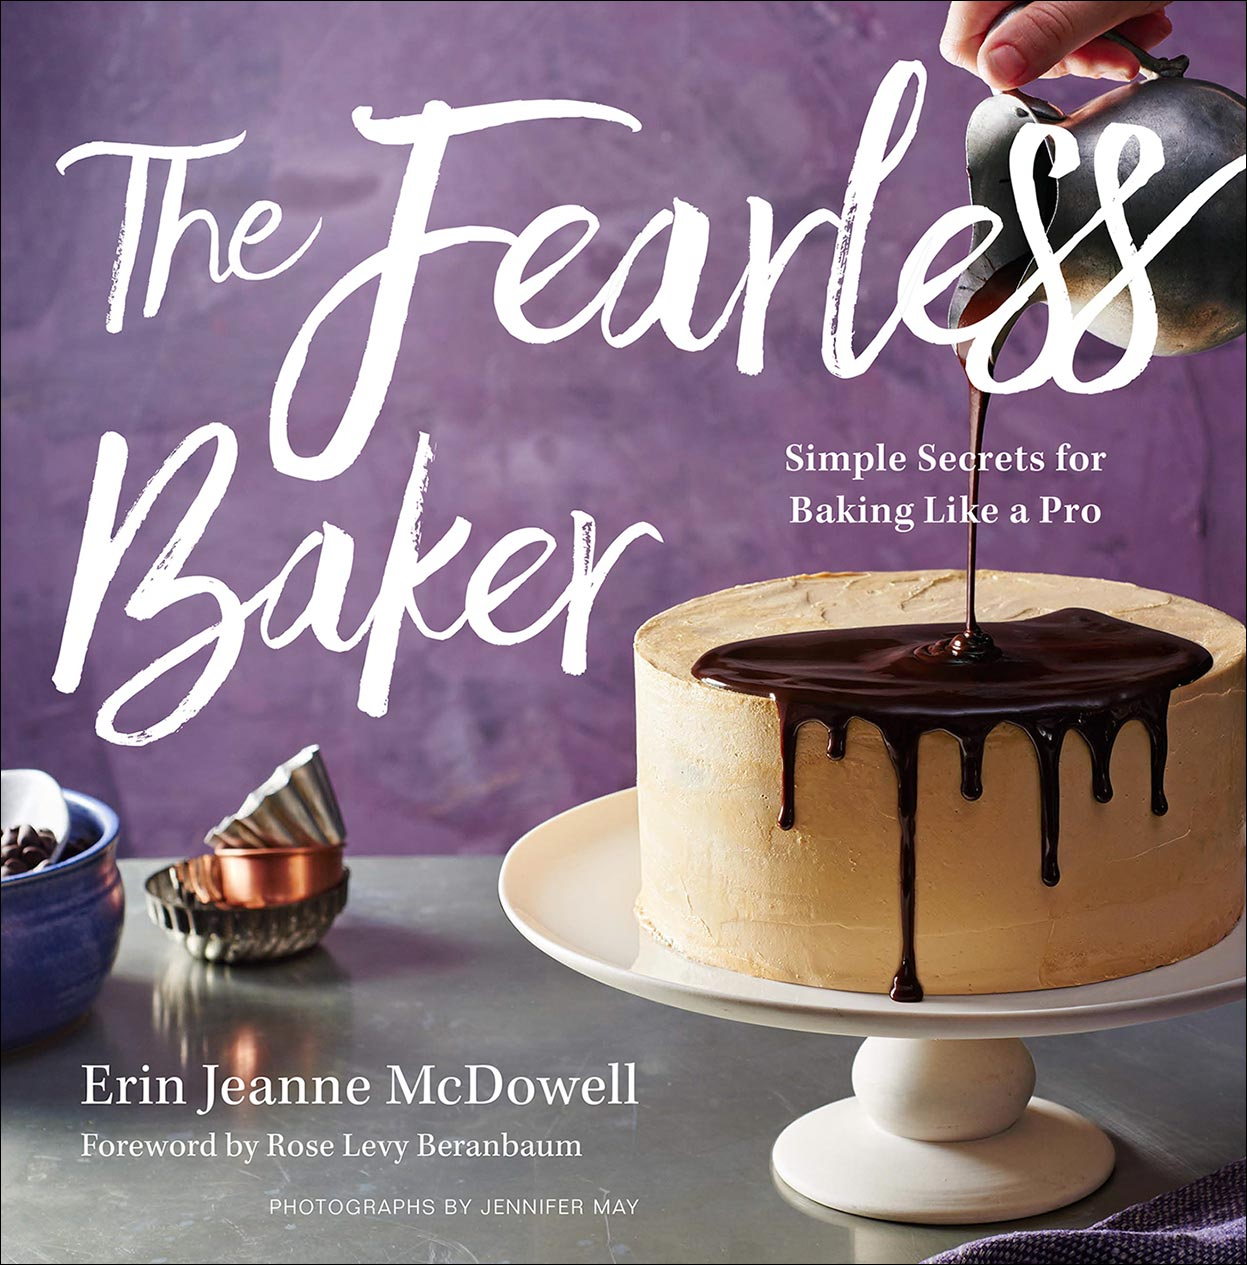 Fearless Baker baking cookbook Jennifer May Photography NY